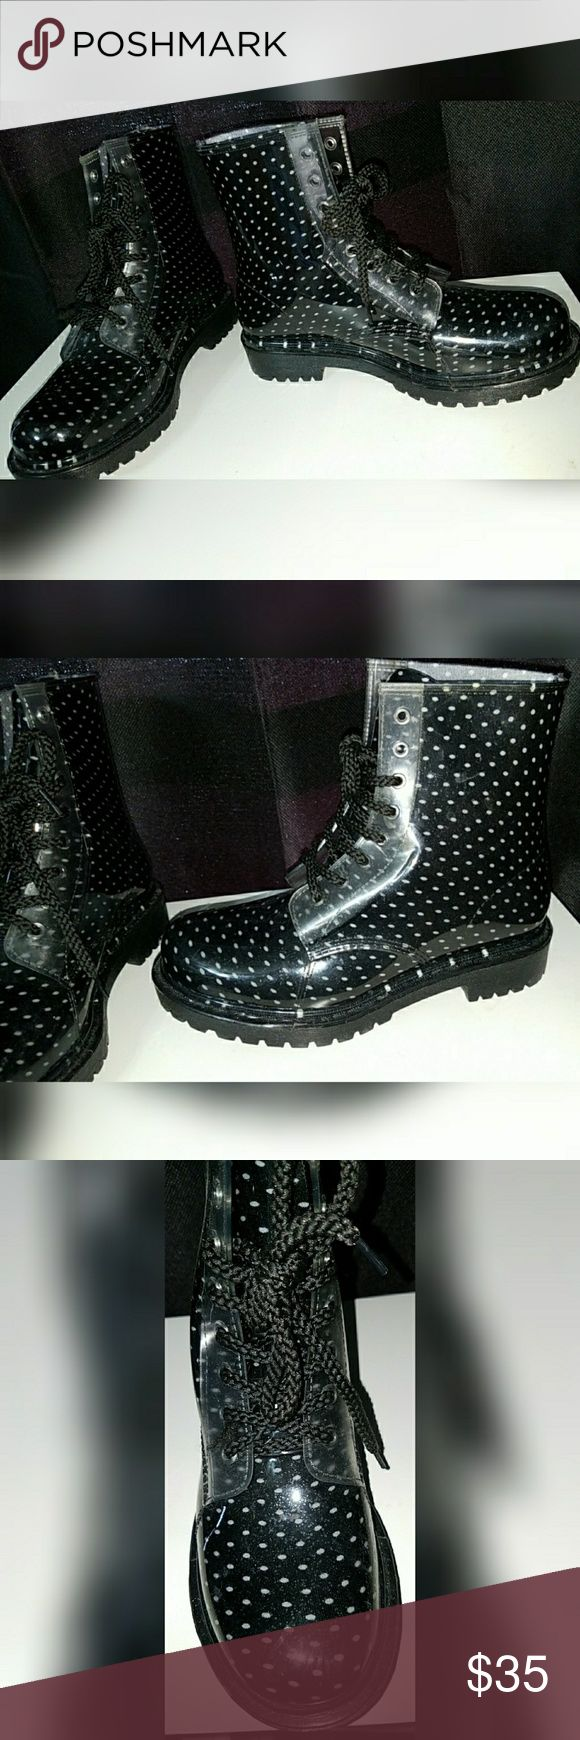 Chunky ''Doc Marten'' Style Transparent Boots Although these boots are not Doc Martens, they look very similar to Doc Martens. They are made of a transparent vinyl fabric that has a cloth black and white polka pattern inside of it. The brand is Dirty Laundry. These have never been worn, they still have the size tags on bottom & size 8.  Feel free to make offers!! Just to make this clear, these are NOT doc martens, these are shoes that look similar to the classic doc marten style. And come…